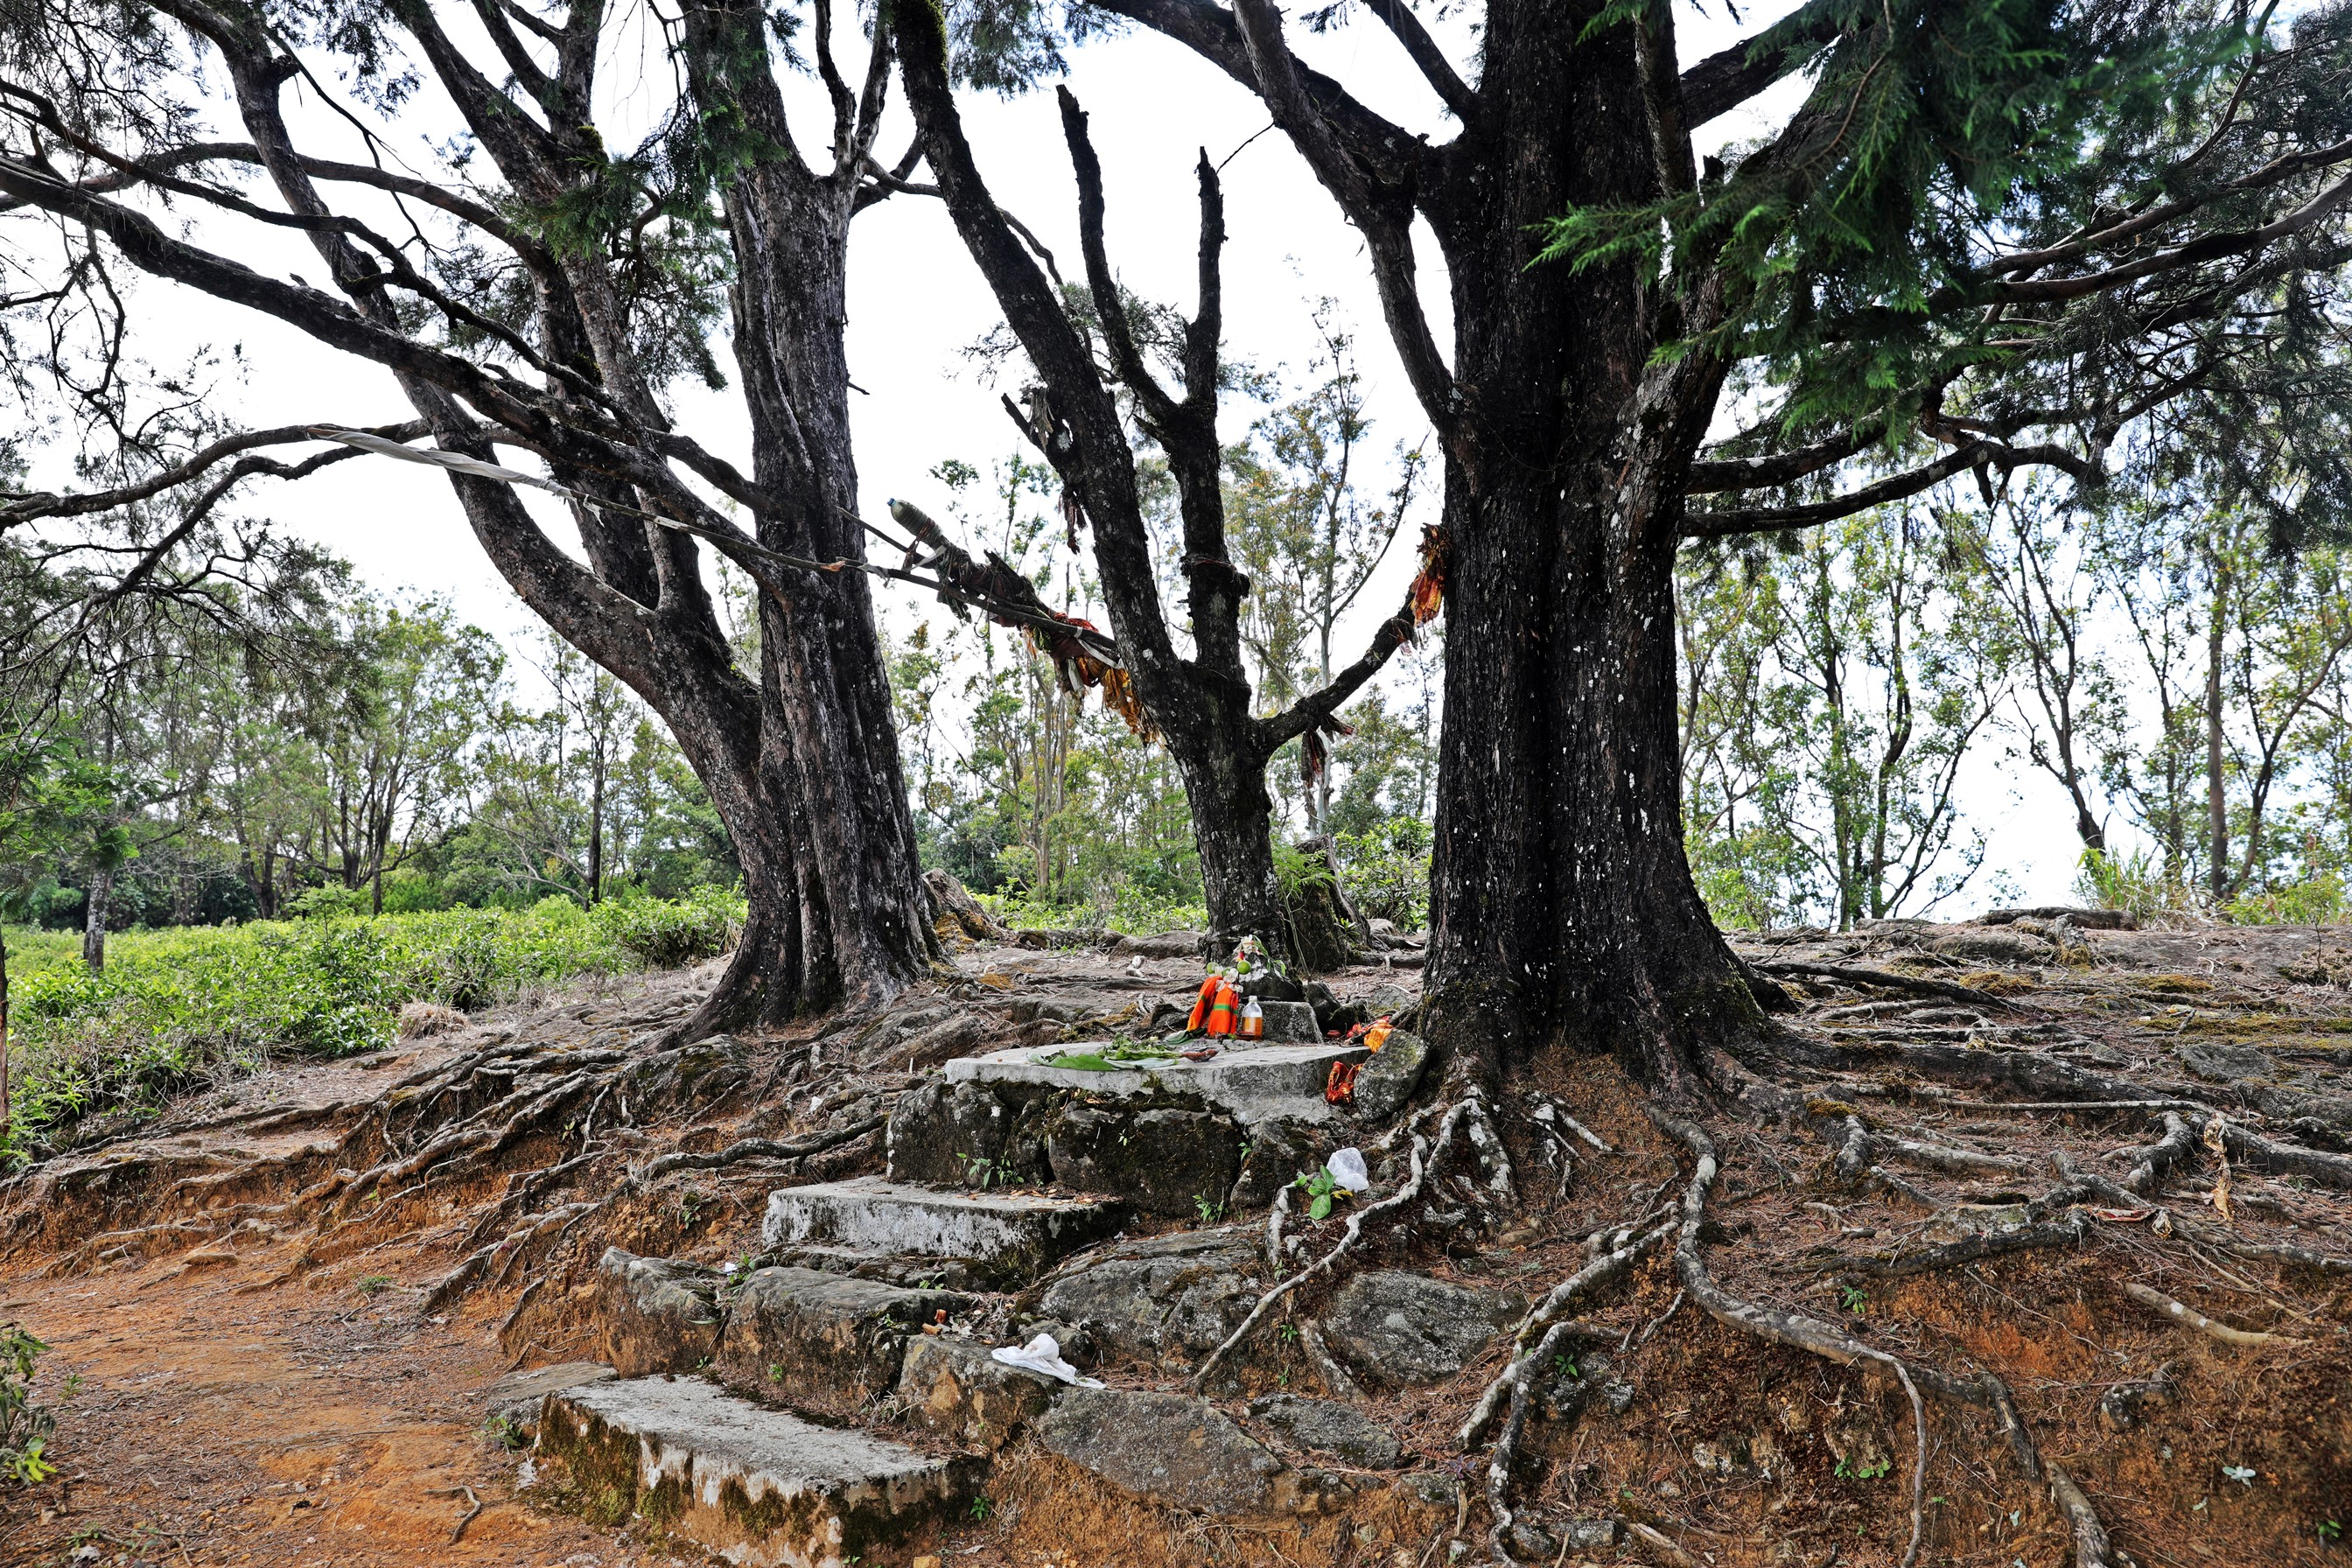 Forest temple, Nuwara Eliya